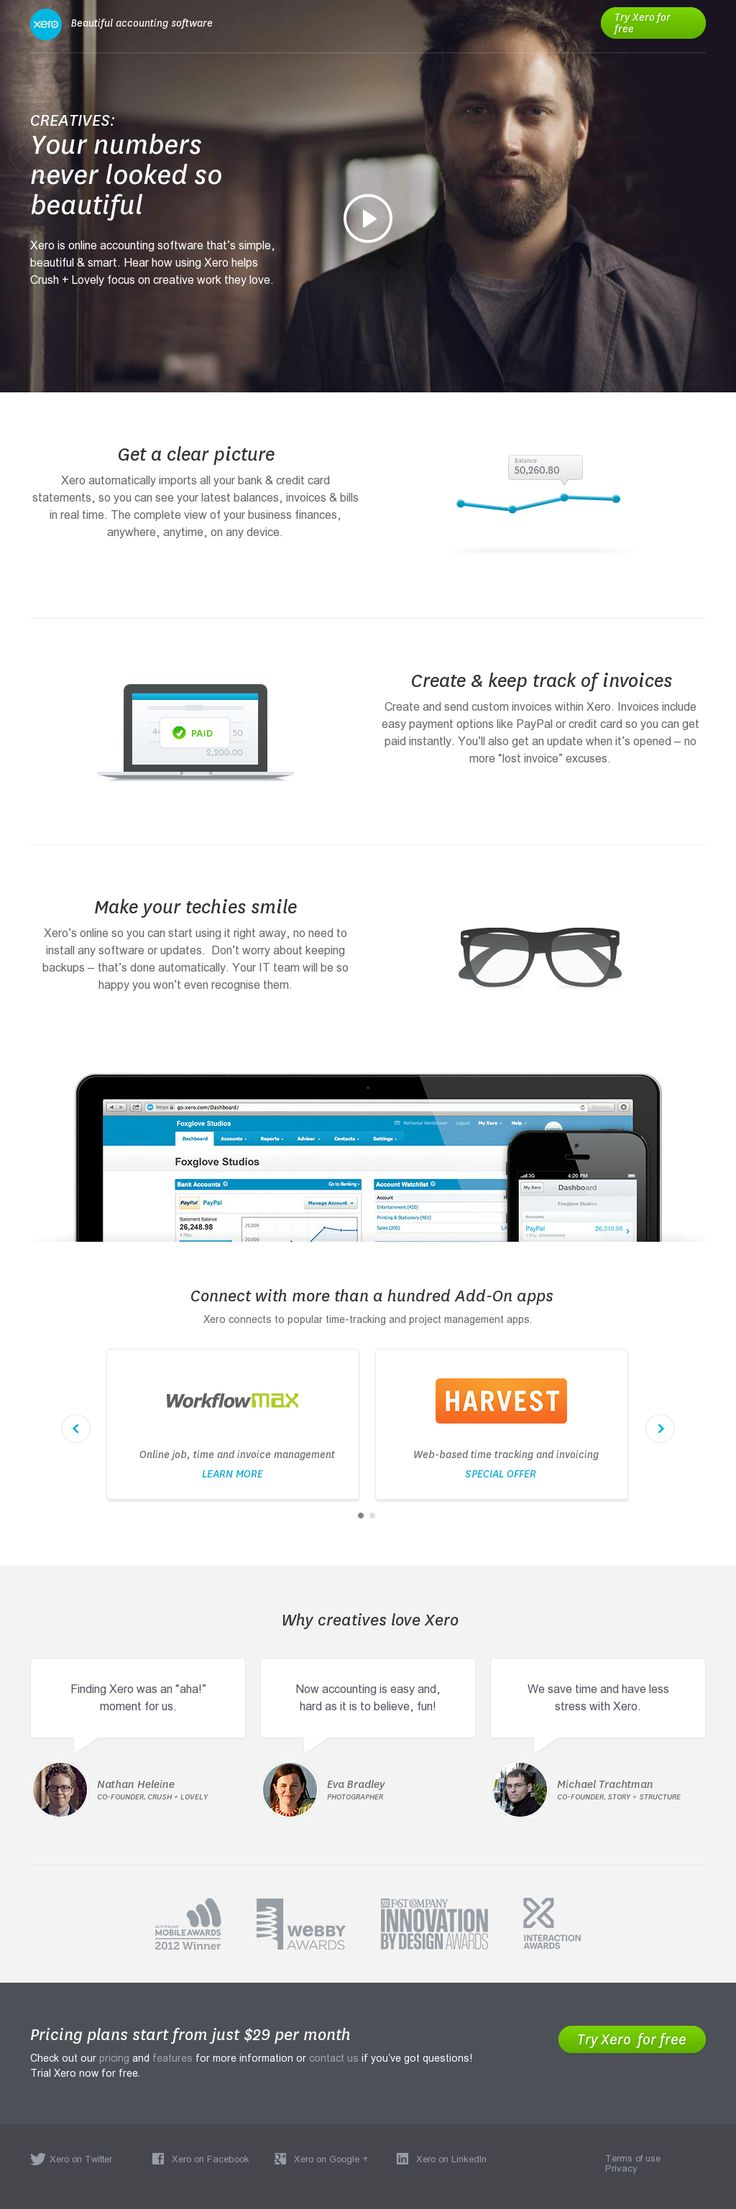 Great for creatives: http://www.xero.com/creatives/